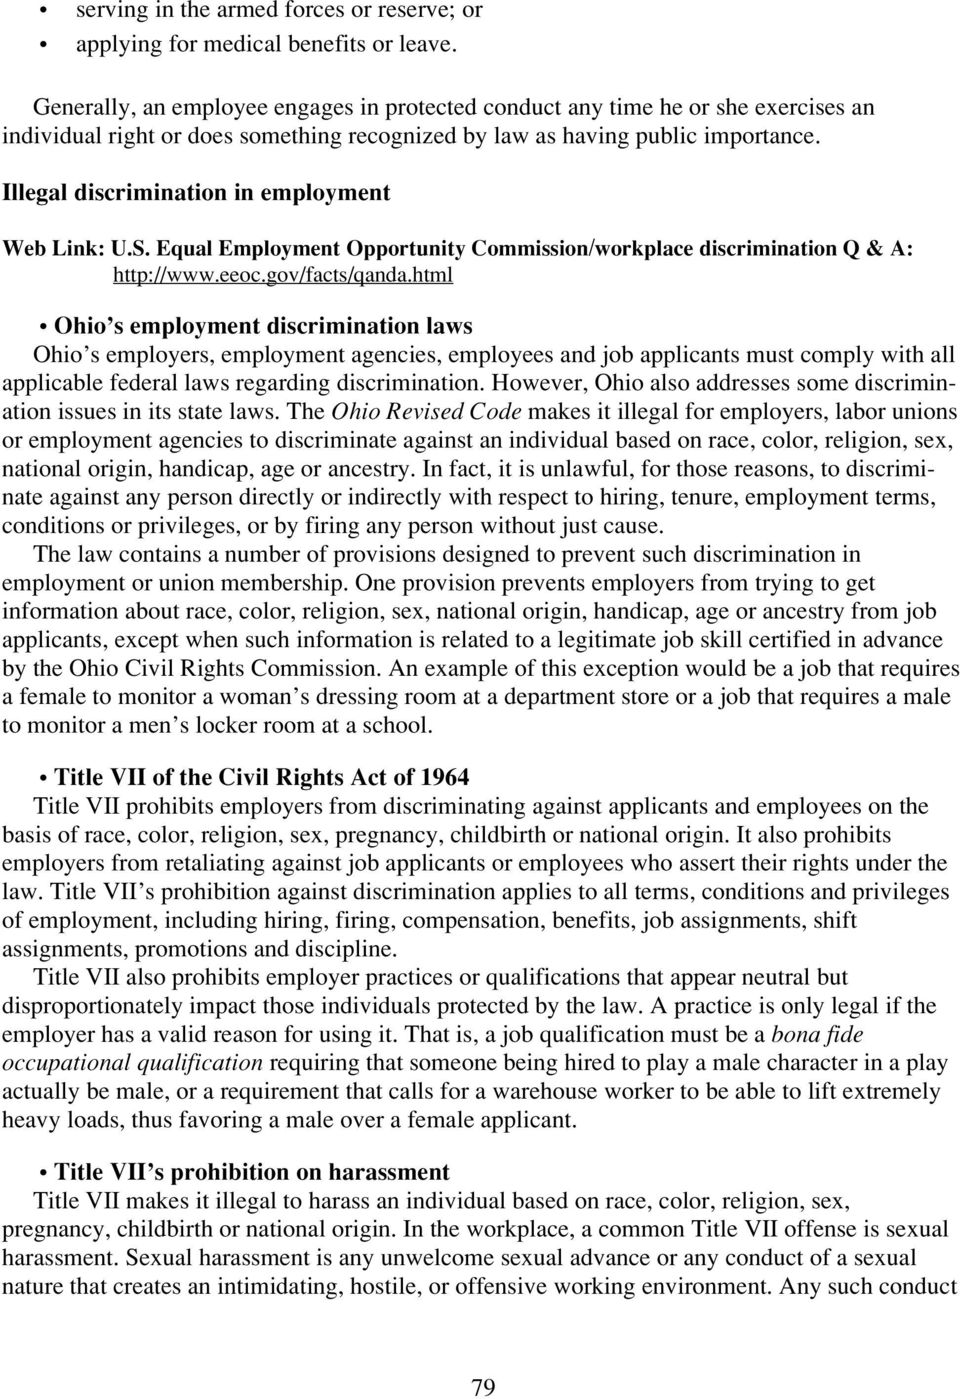 Illegal discrimination in employment Web Link: U.S. Equal Employment Opportunity Commission/workplace discrimination Q & A: http://www.eeoc.gov/facts/qanda.